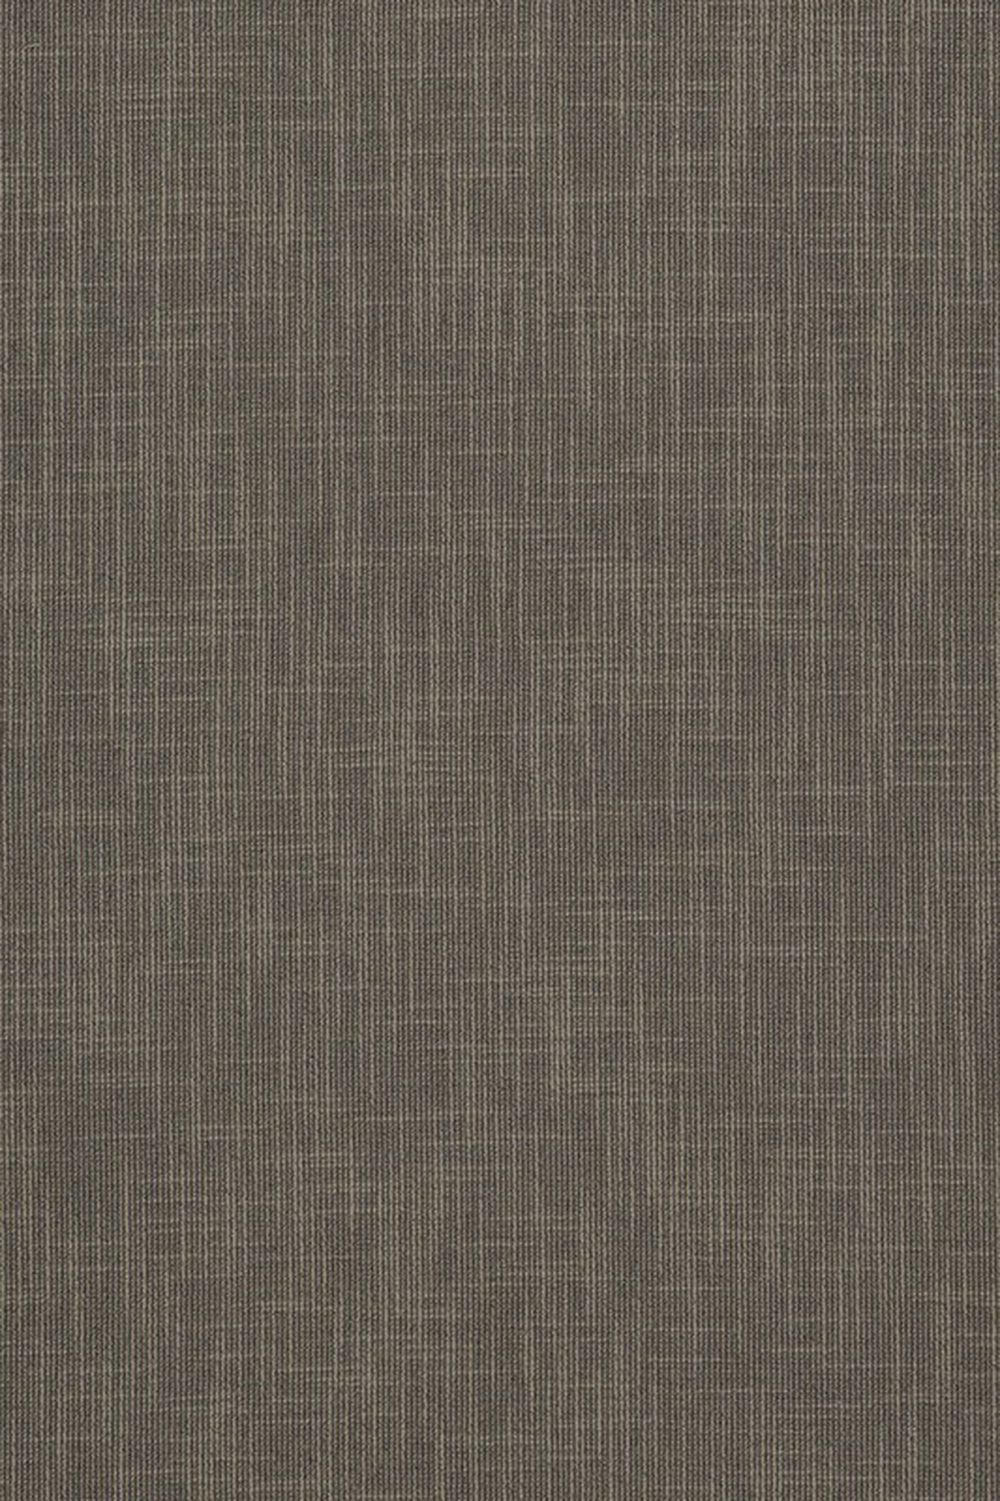 Photo of the fabric Miso * Mondo swatch by Pegasus. Use for Curtains, Accessory. Style of Plain, Texture